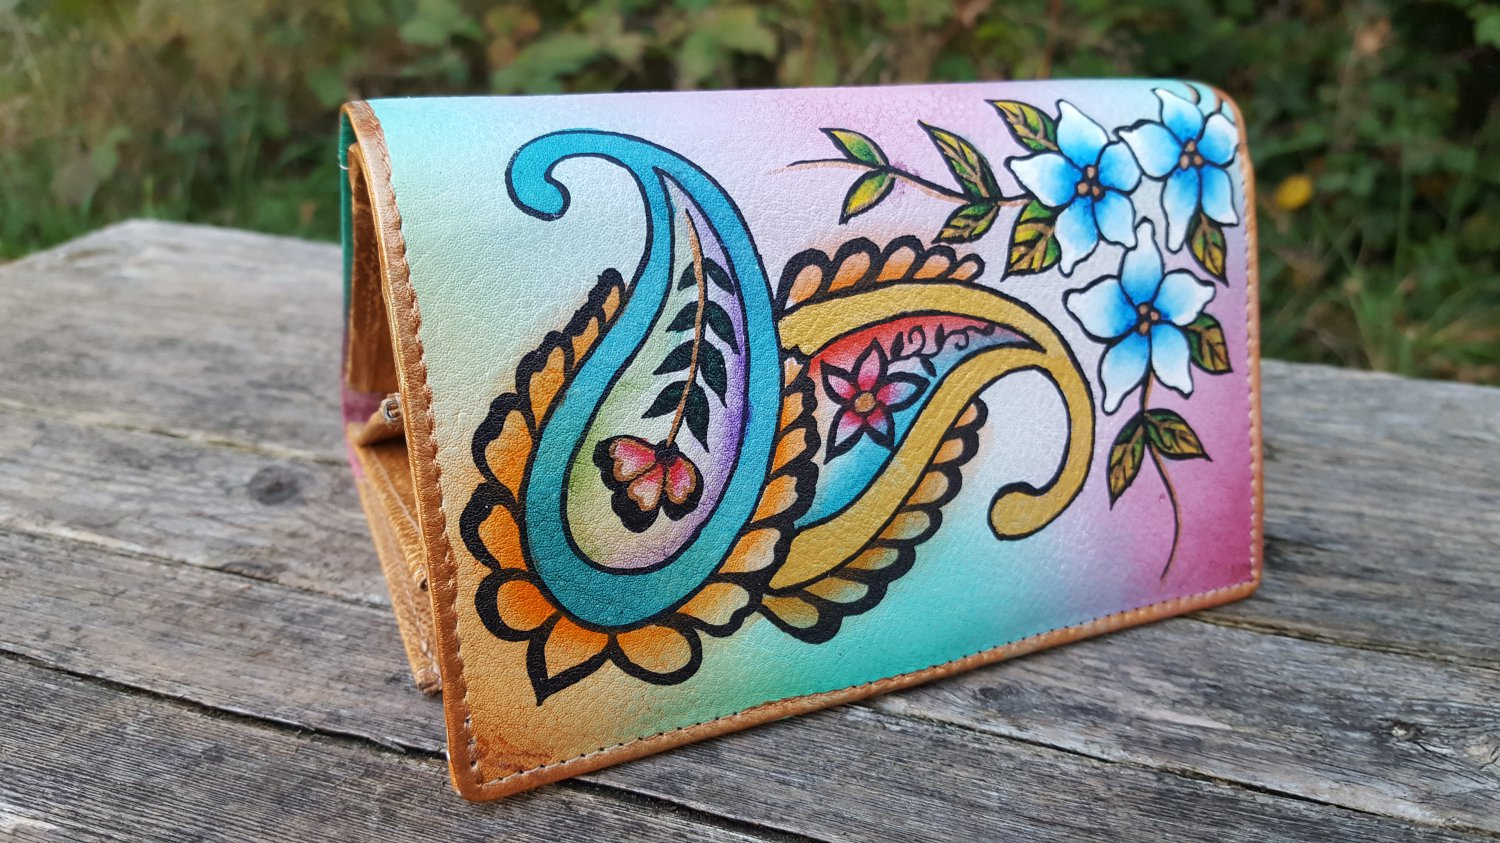 Genuine Leather Wallet Money Card Organizer Large Womens Coin Purse Hand Painted  Gifts For Women